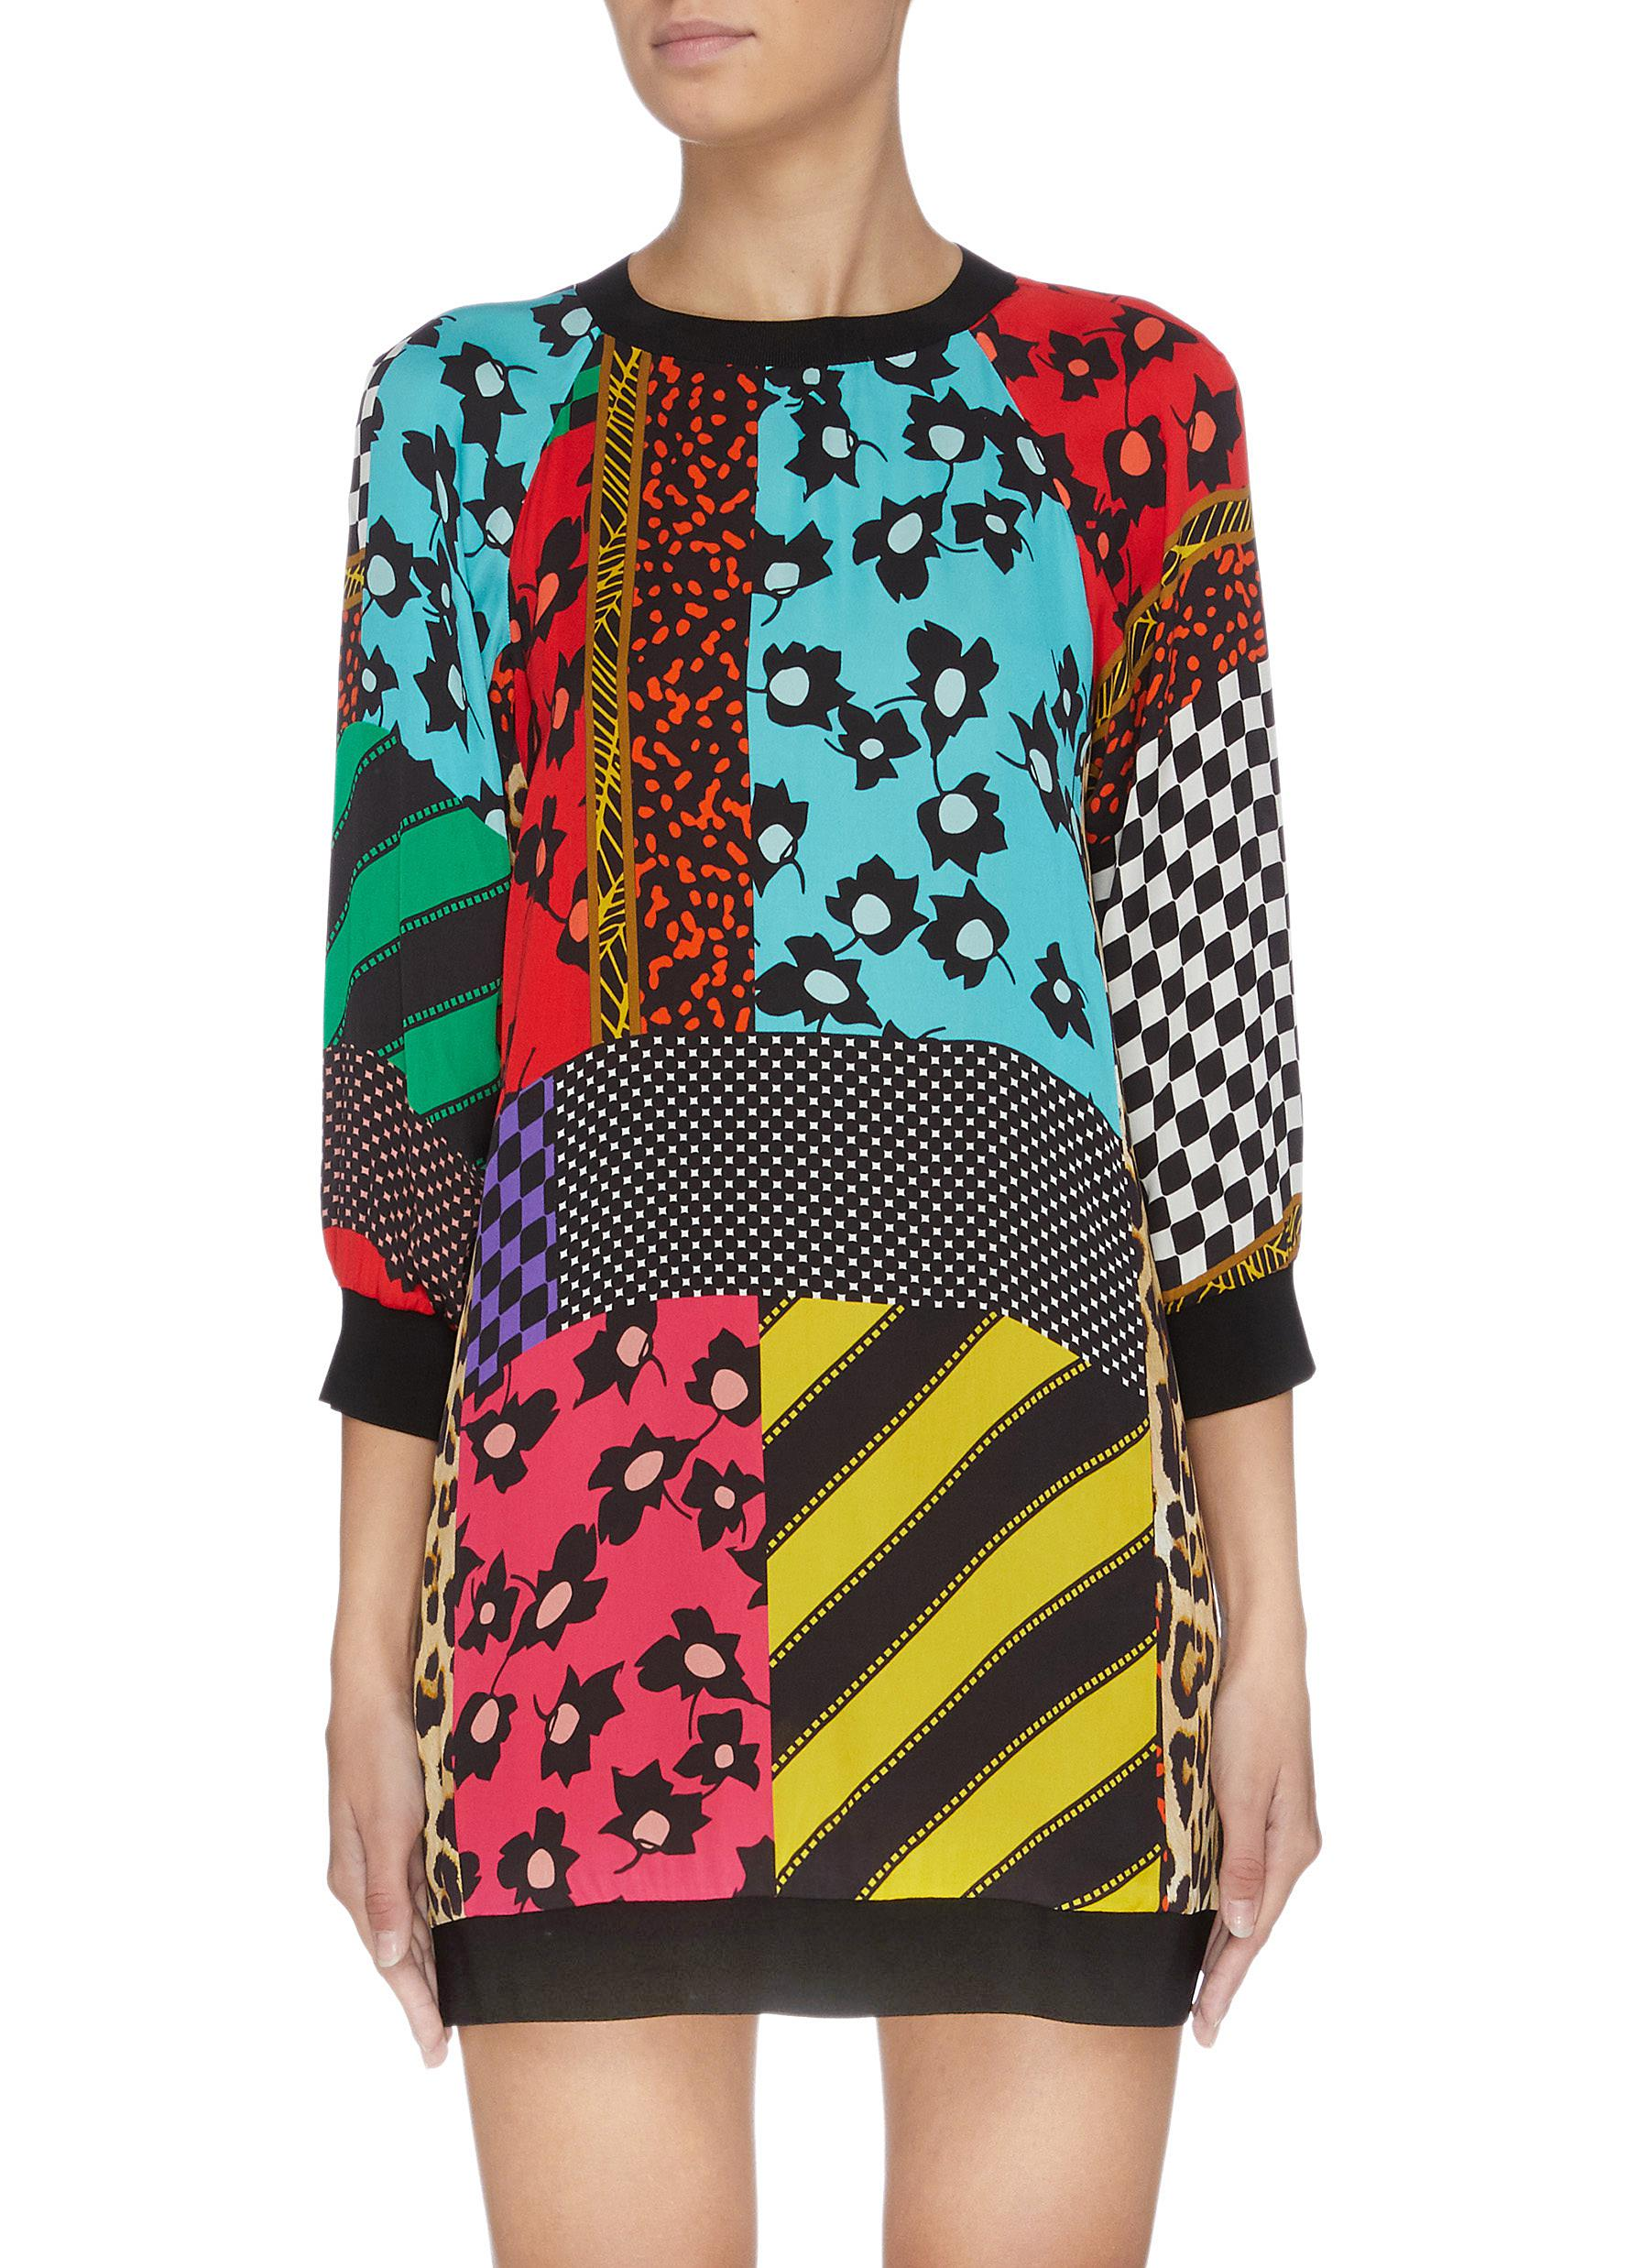 Jetti colourblock mix print sweatshirt dress by Alice + Olivia